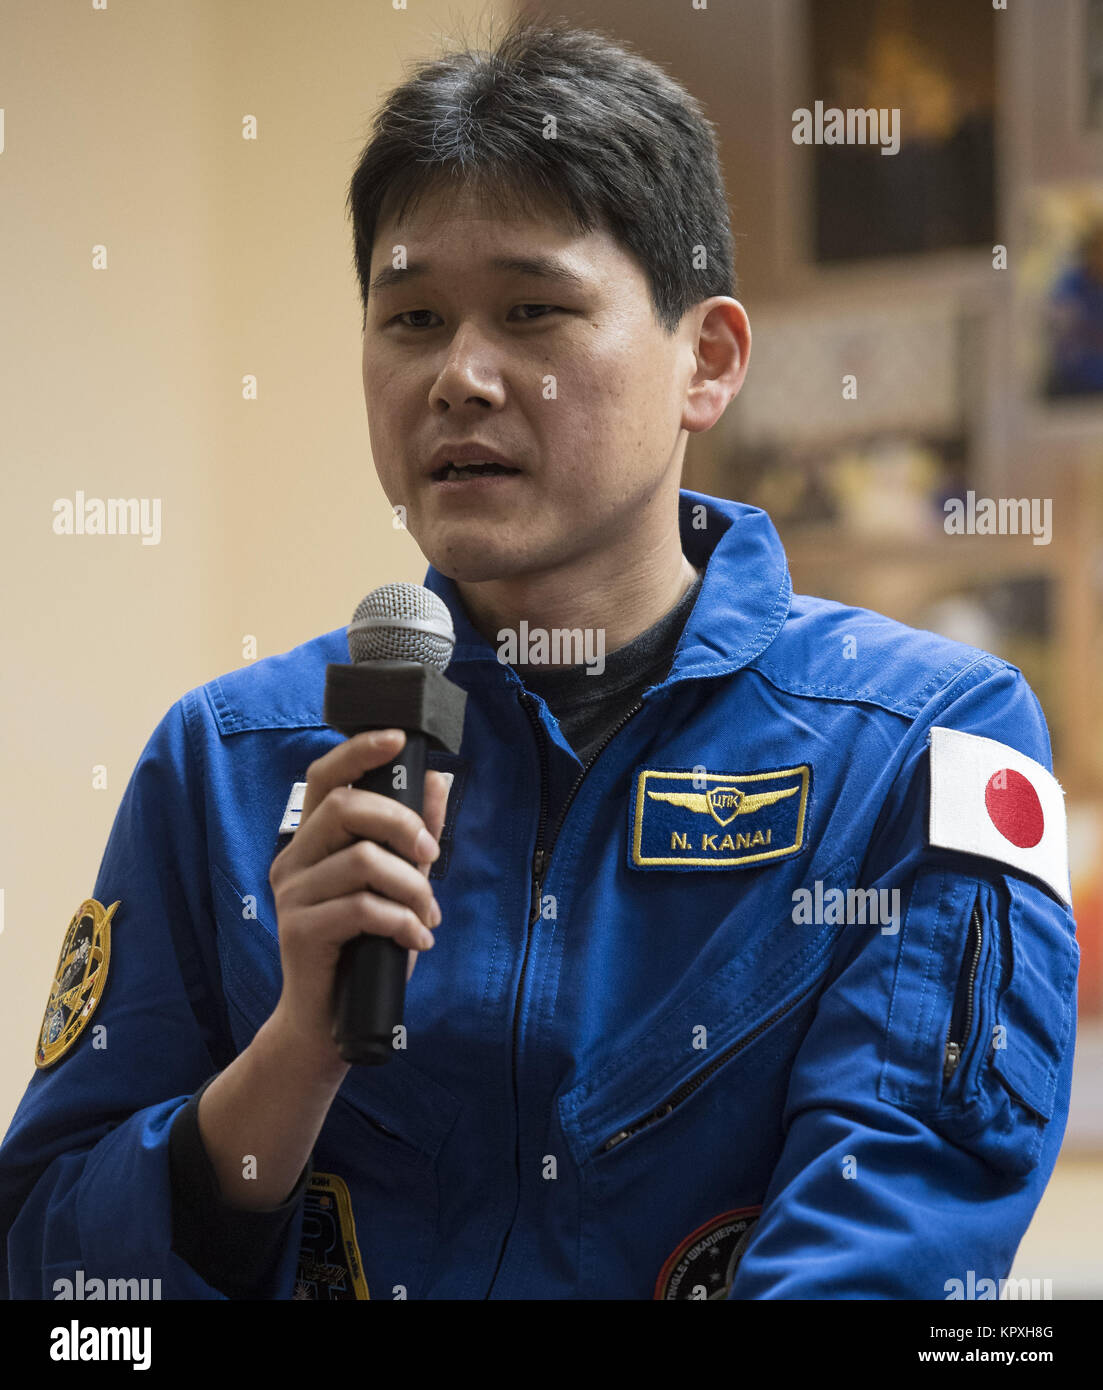 Baikonur, Kazakhstan. 16th Dec, 2017. Expedition 54 flight engineer Norishige Kanai of Japan Aerospace Exploration - Stock Image